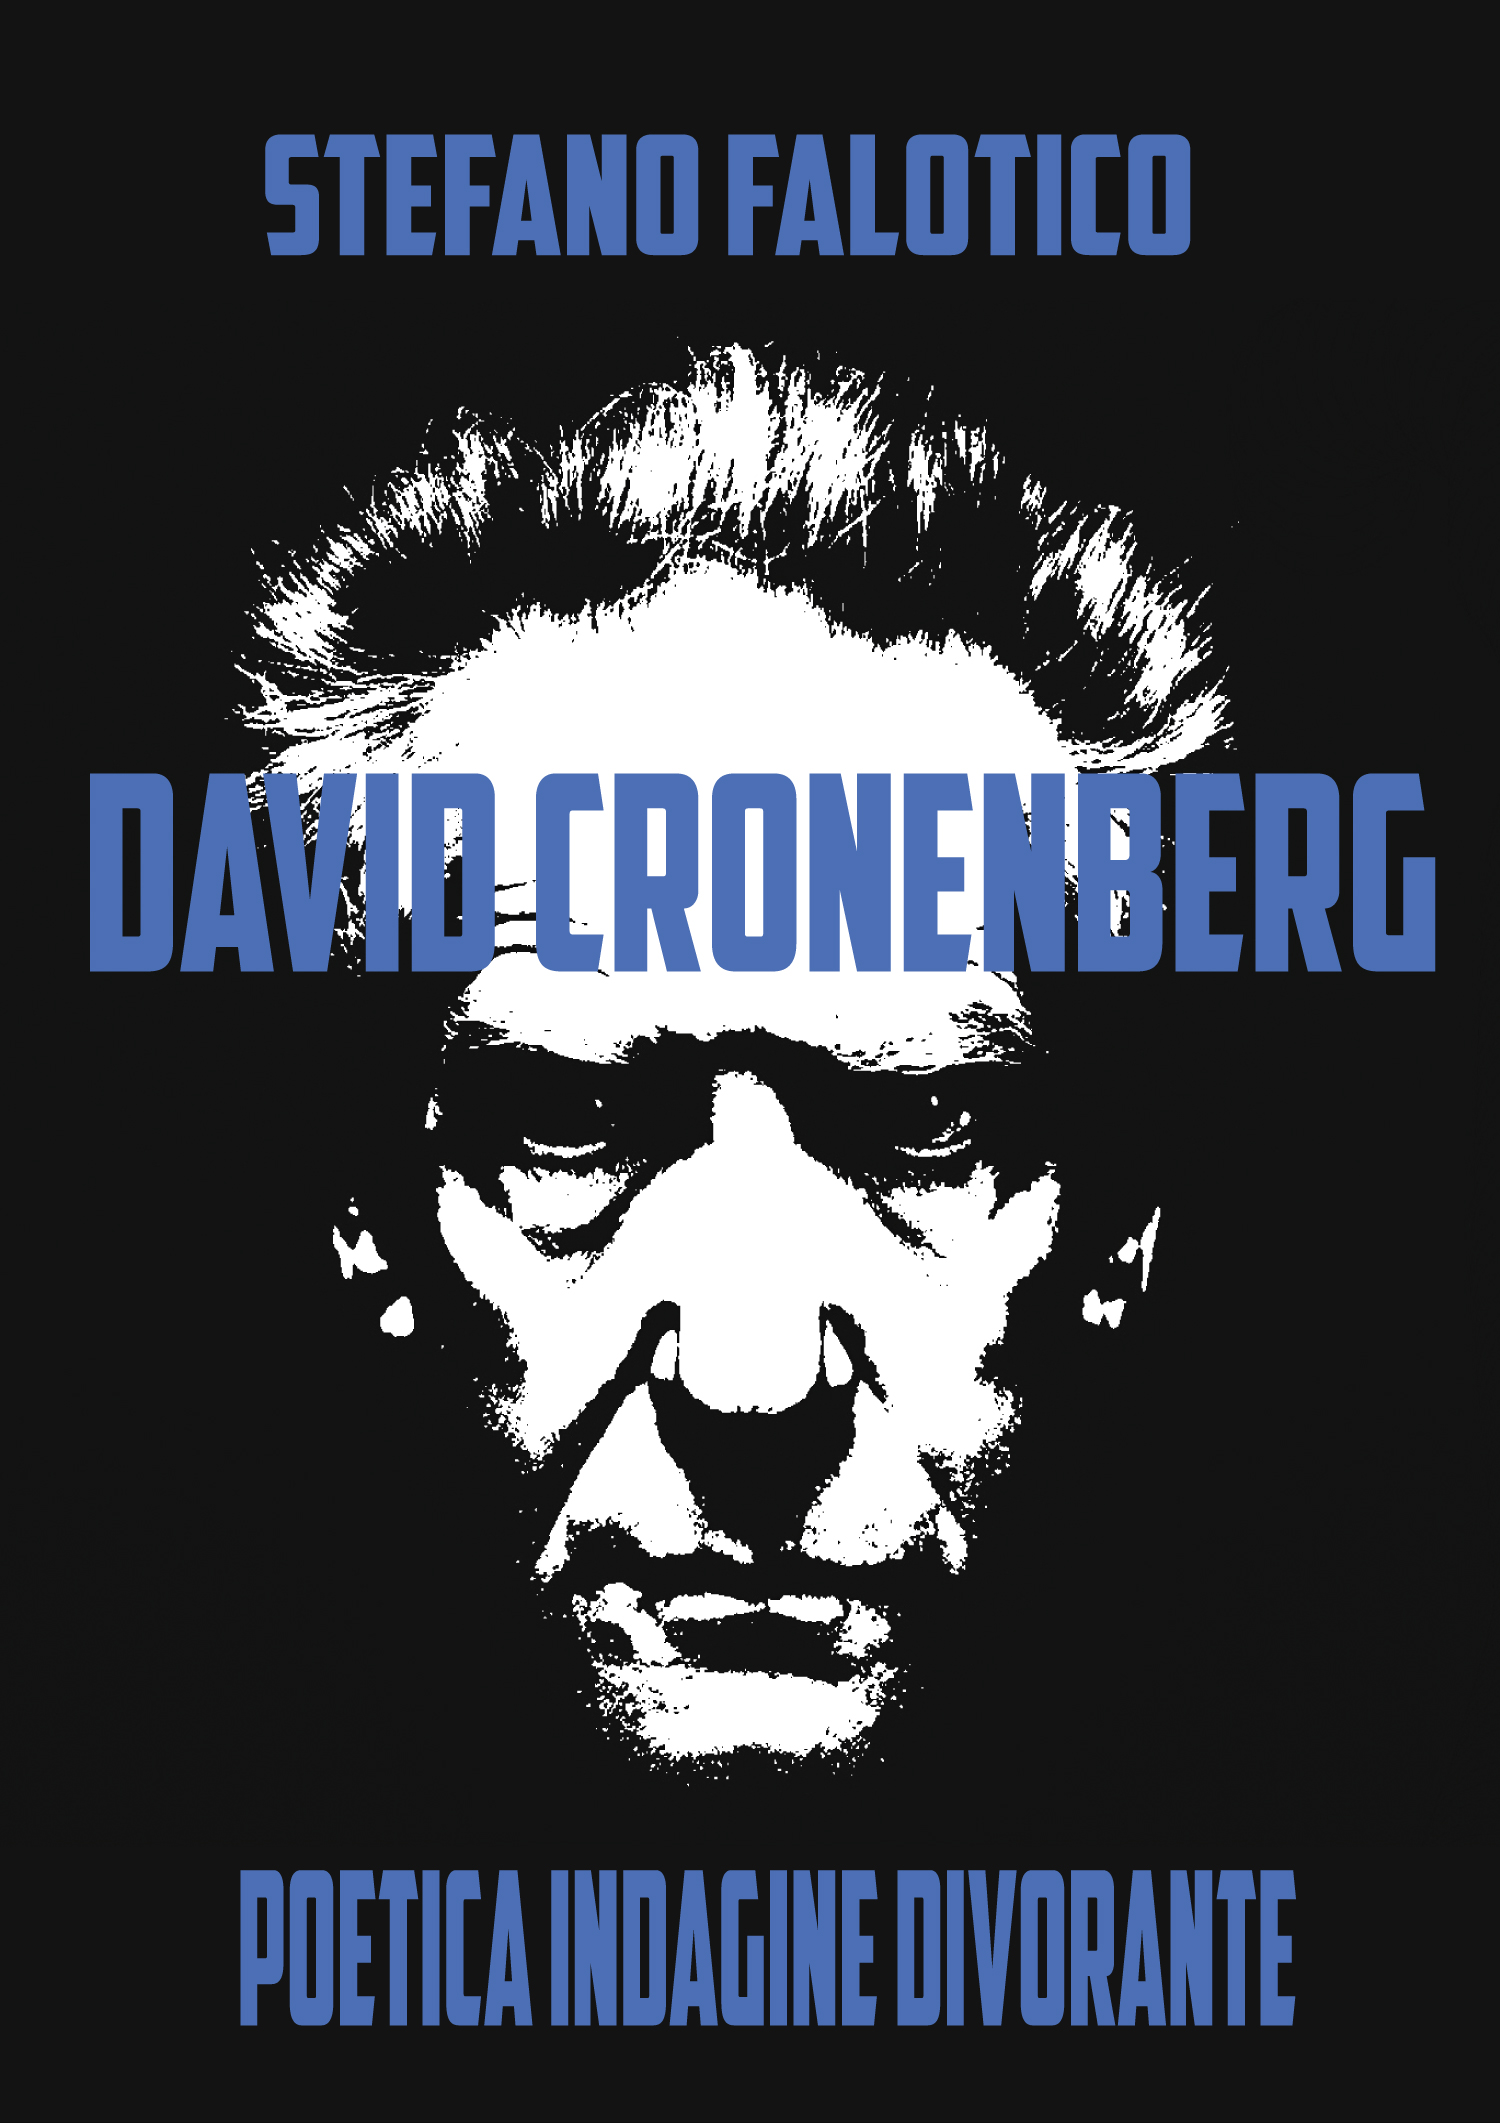 David Cronenberg Falotico cover